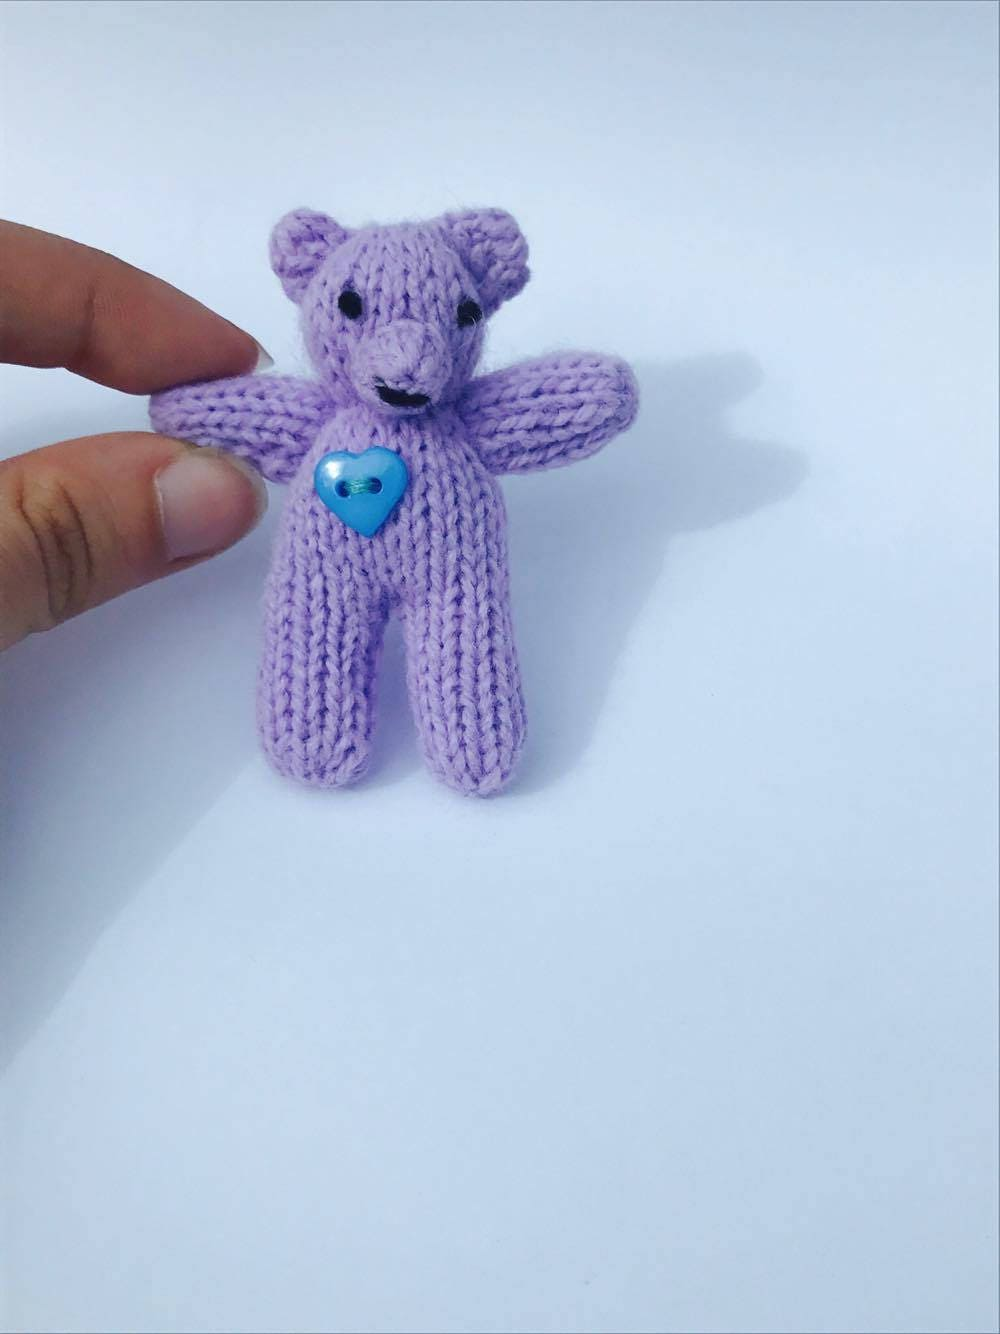 Mini Purple Teddy Bear  Knitted  7.5cm Purple with Blue Heart Button